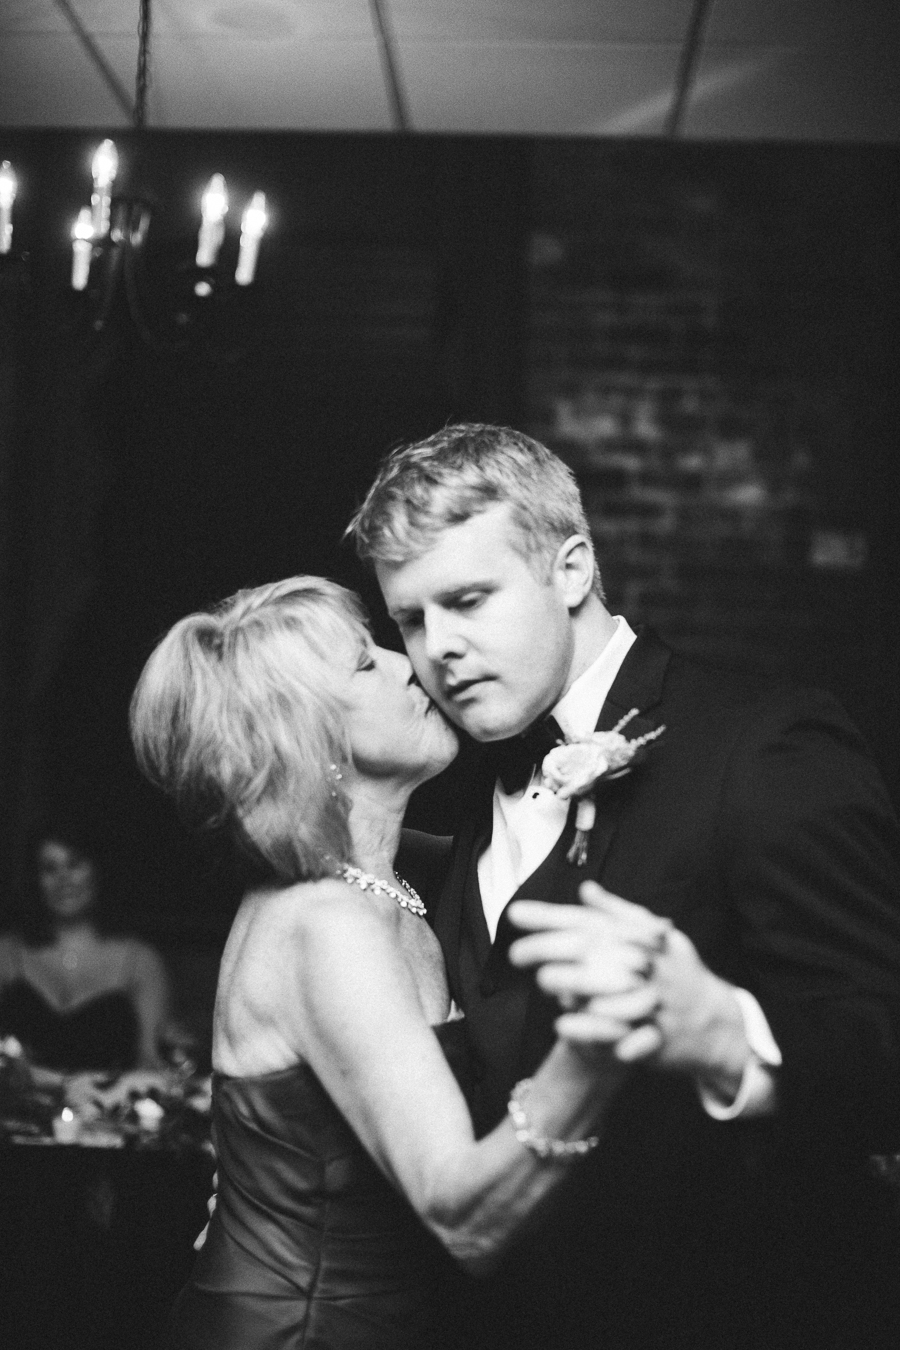 Mother And Son Dance At Wedding - Wedding Photography